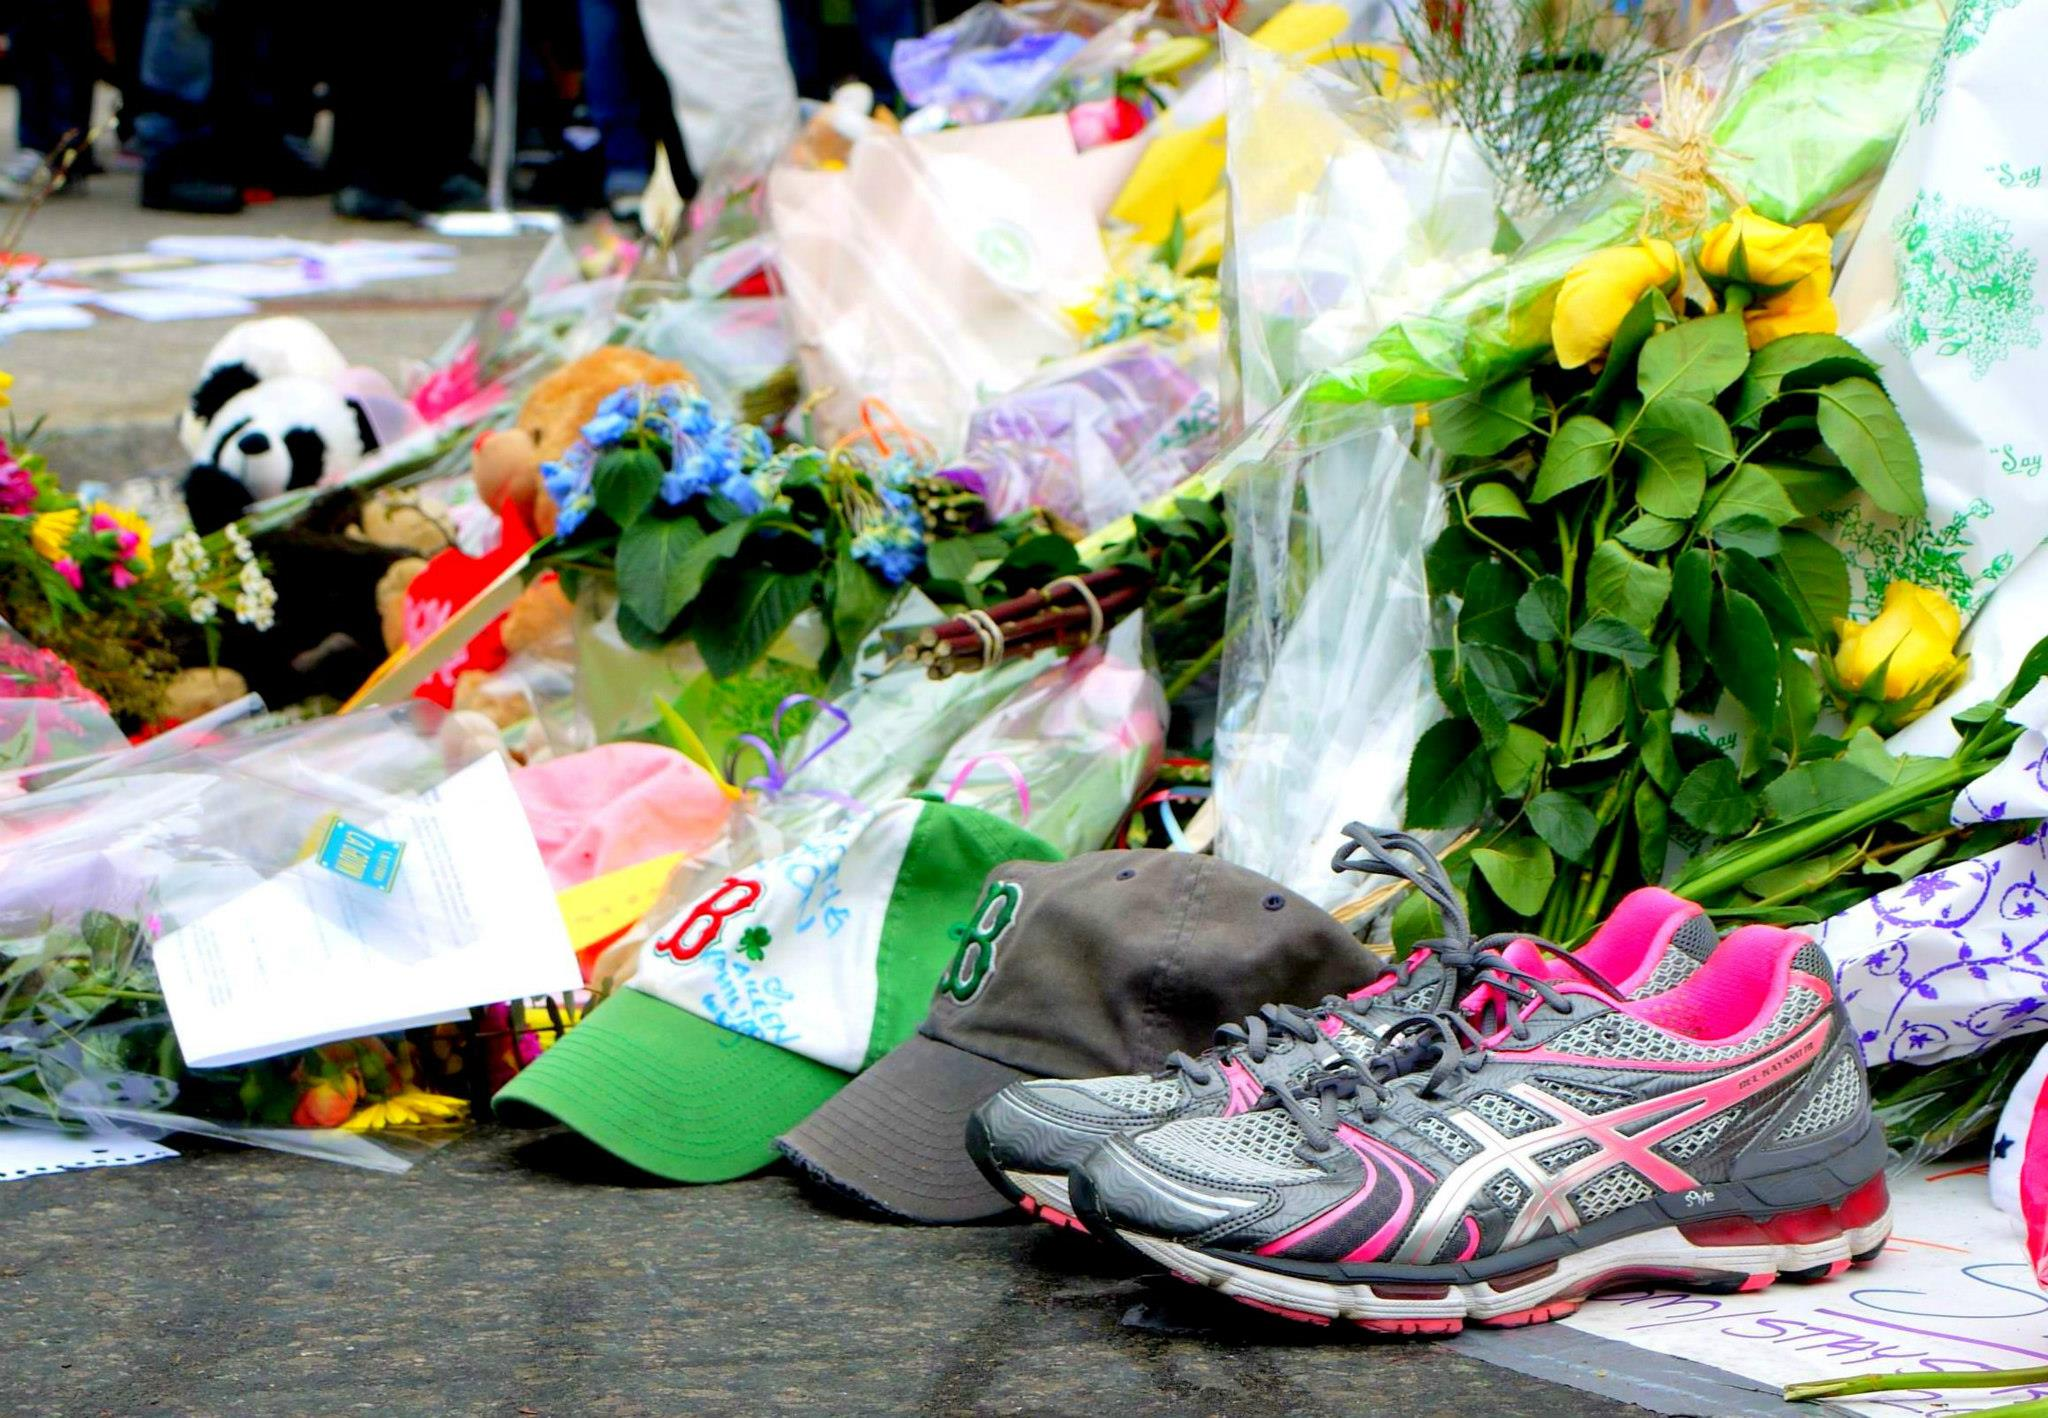 Boston Marathon 2013 |  Runner's shoes in memory and solidarity